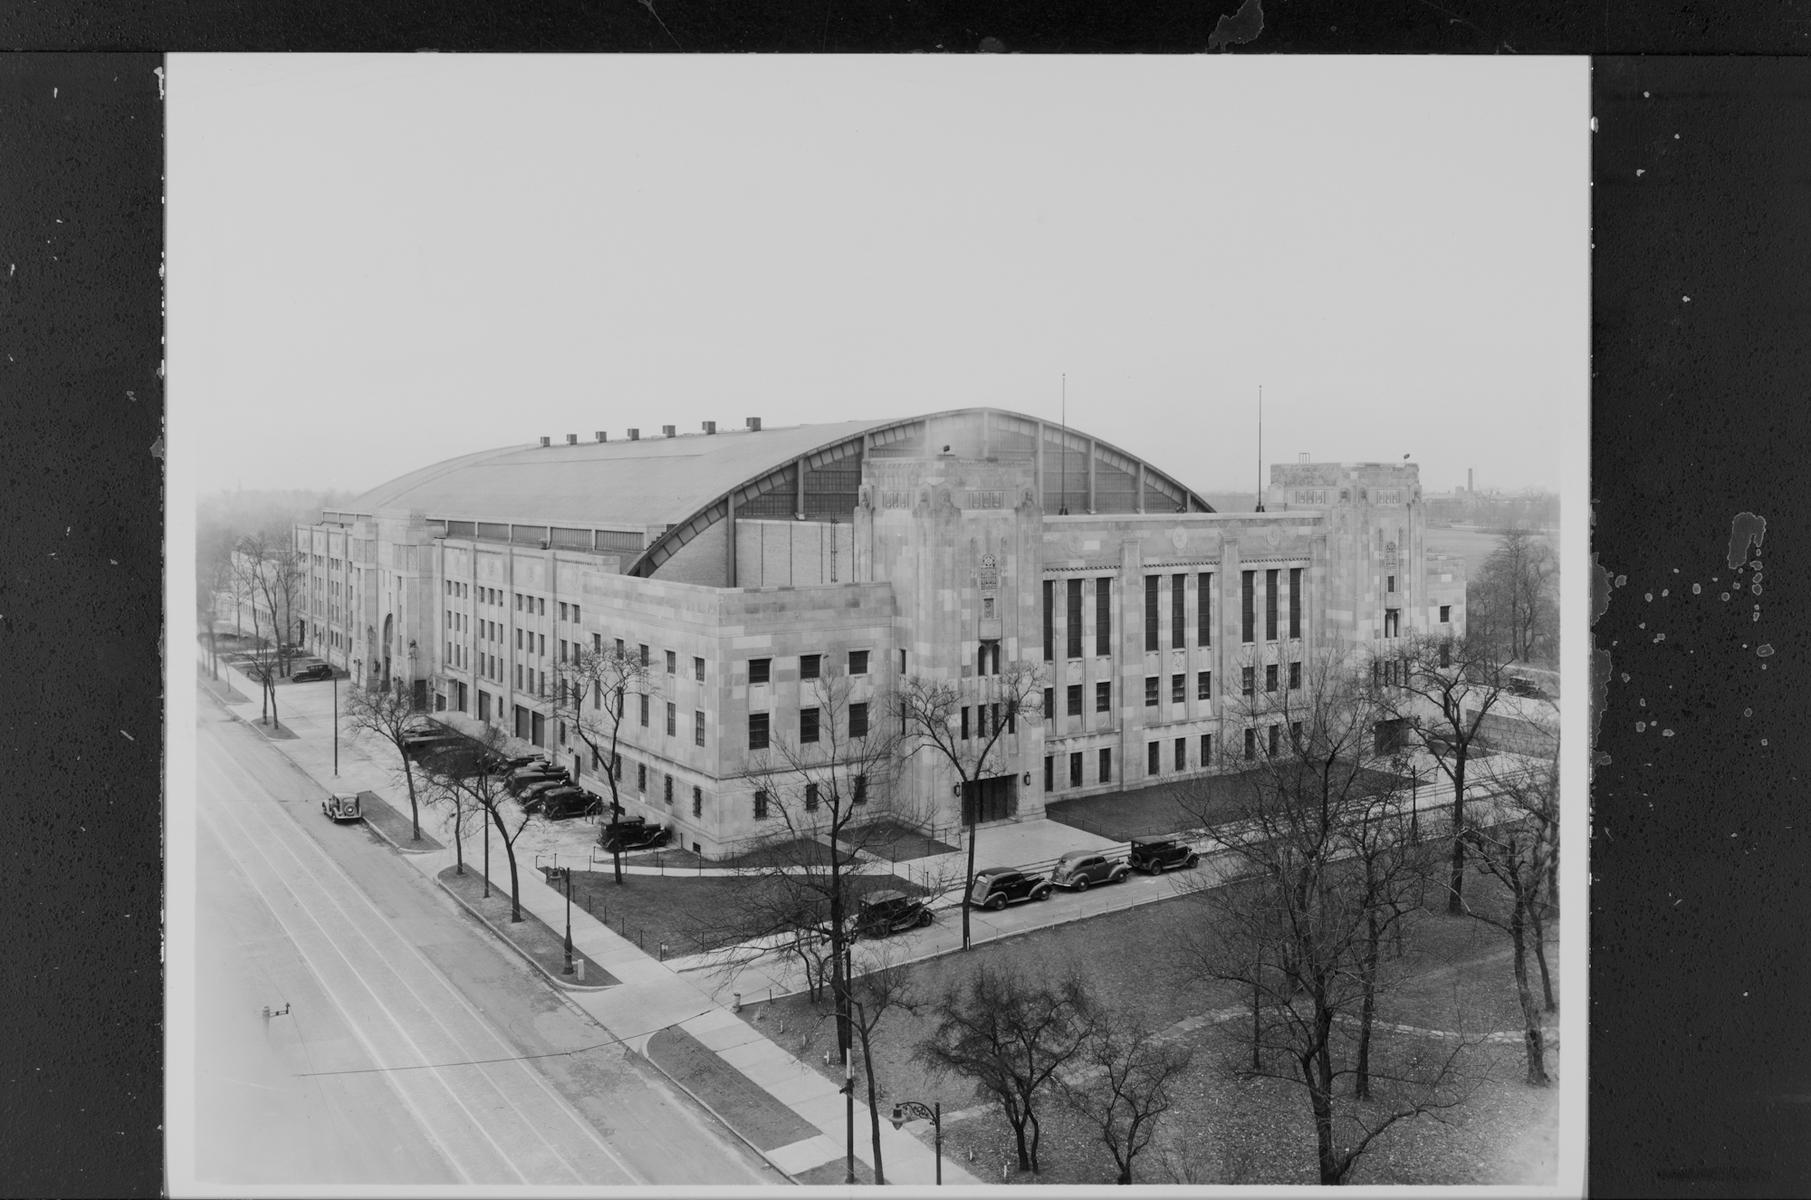 124th Field Artillery Armory, South Cottage Grove Avenue and 53rd Street